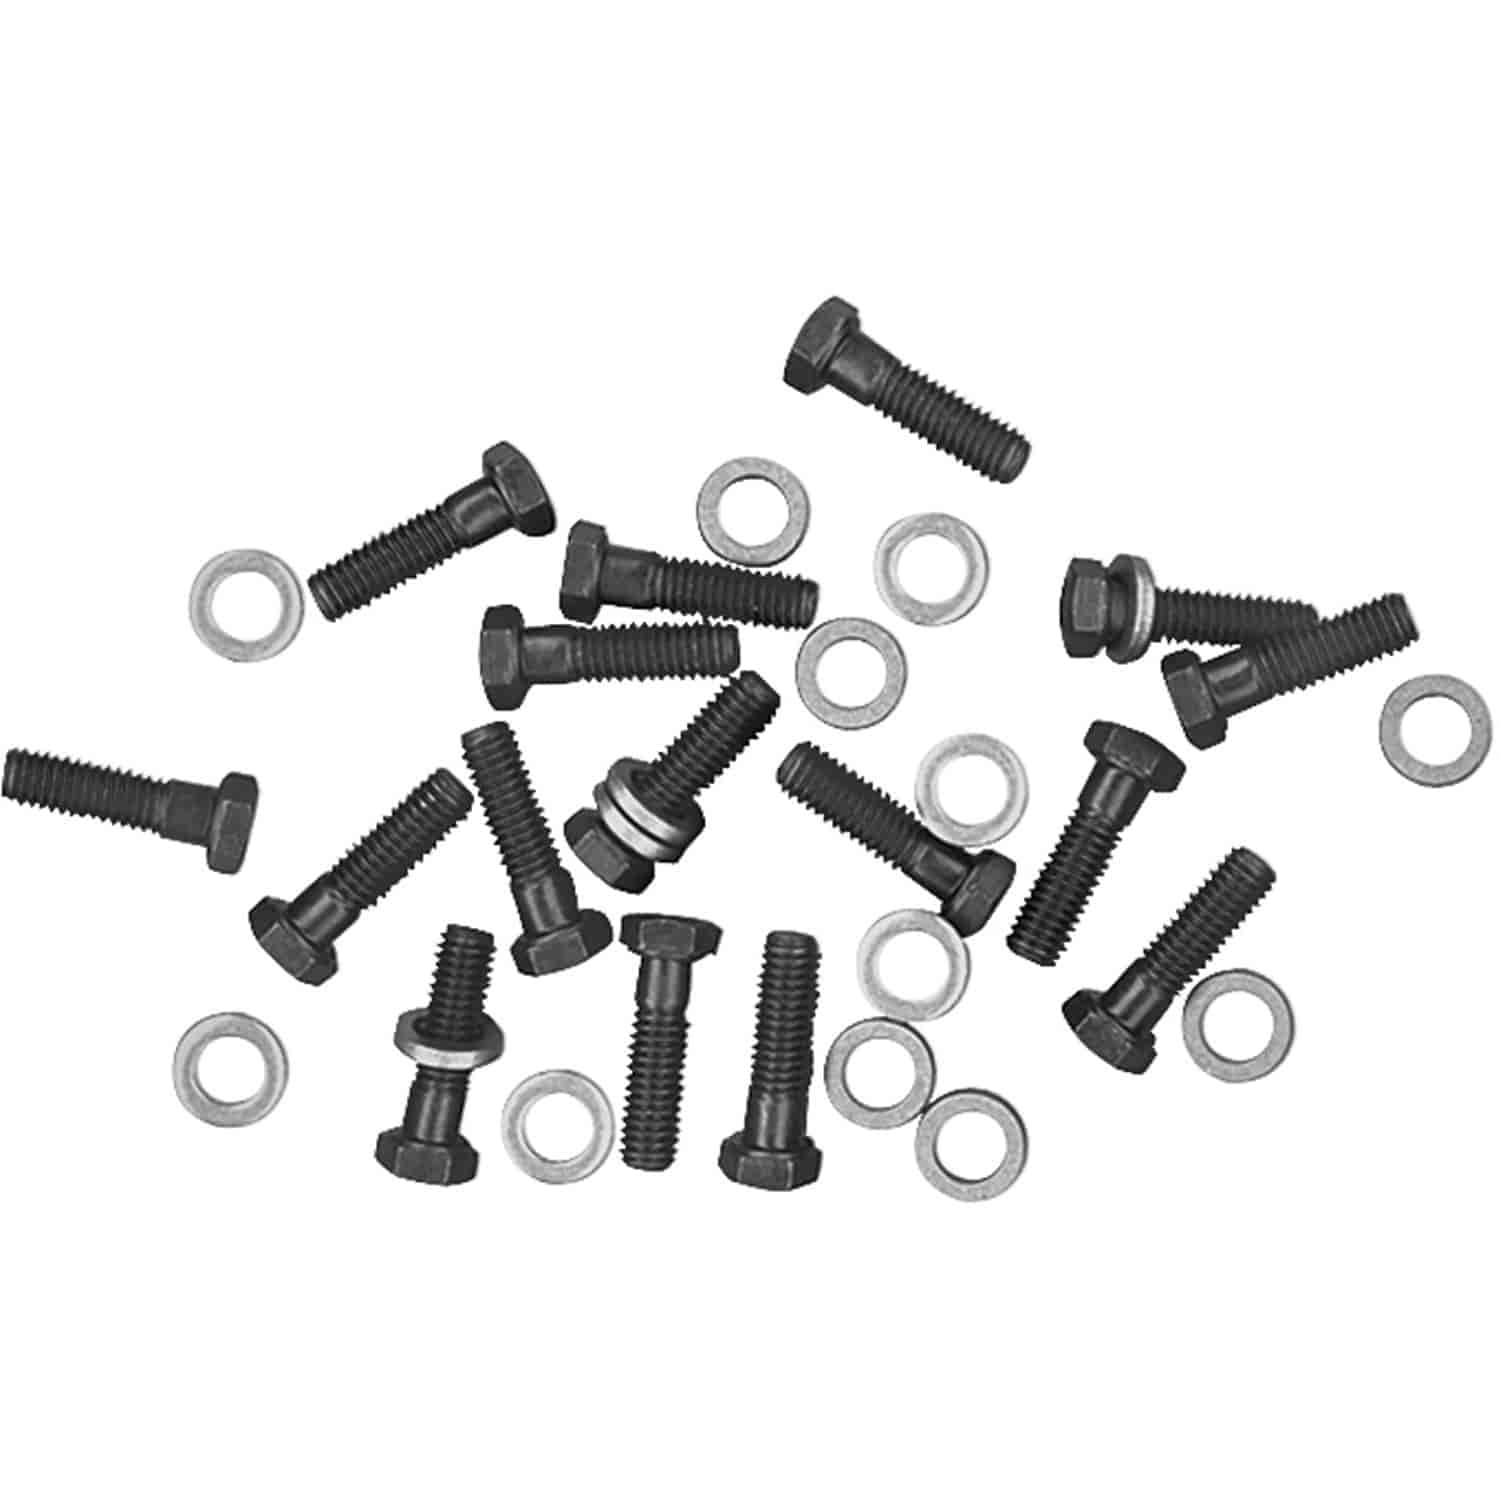 Restoparts 38ex000 Small Block Exhaust Manifold Bolts